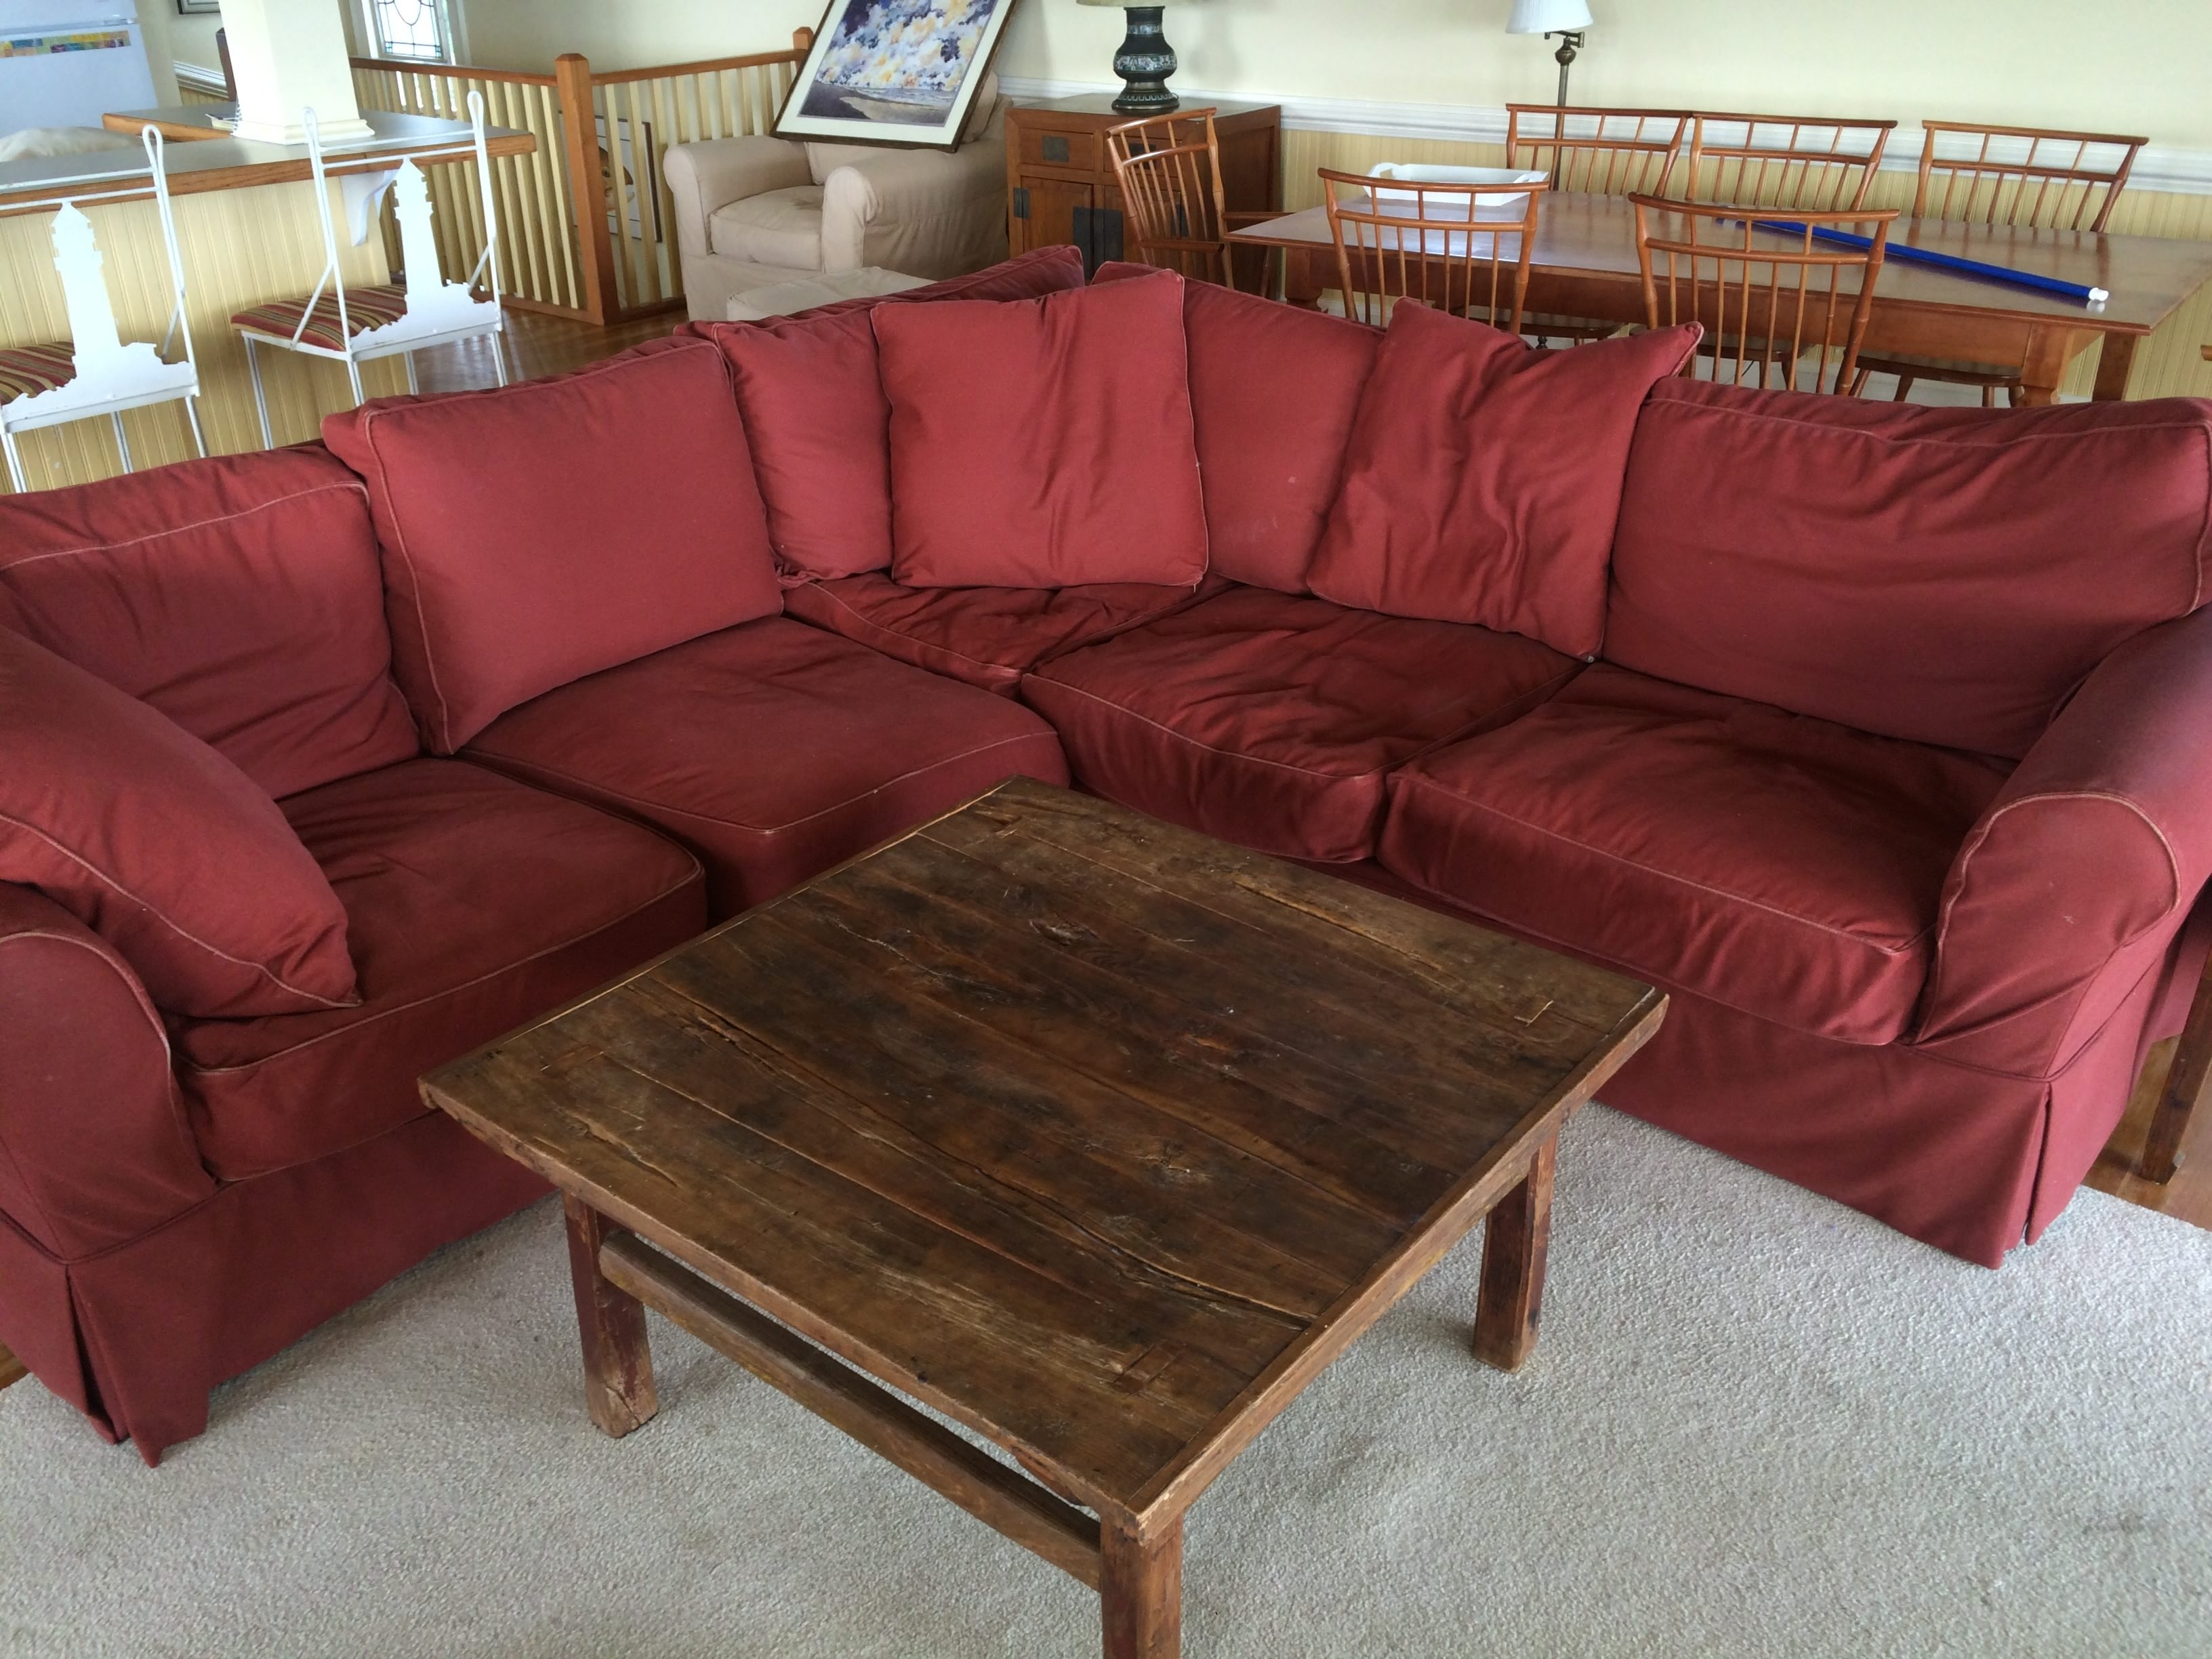 Down Filled Sectional Sofa Hereo Sofa With Down Filled Sectional Sofas (#4 of 12 : down filled sectional sofa - Sectionals, Sofas & Couches